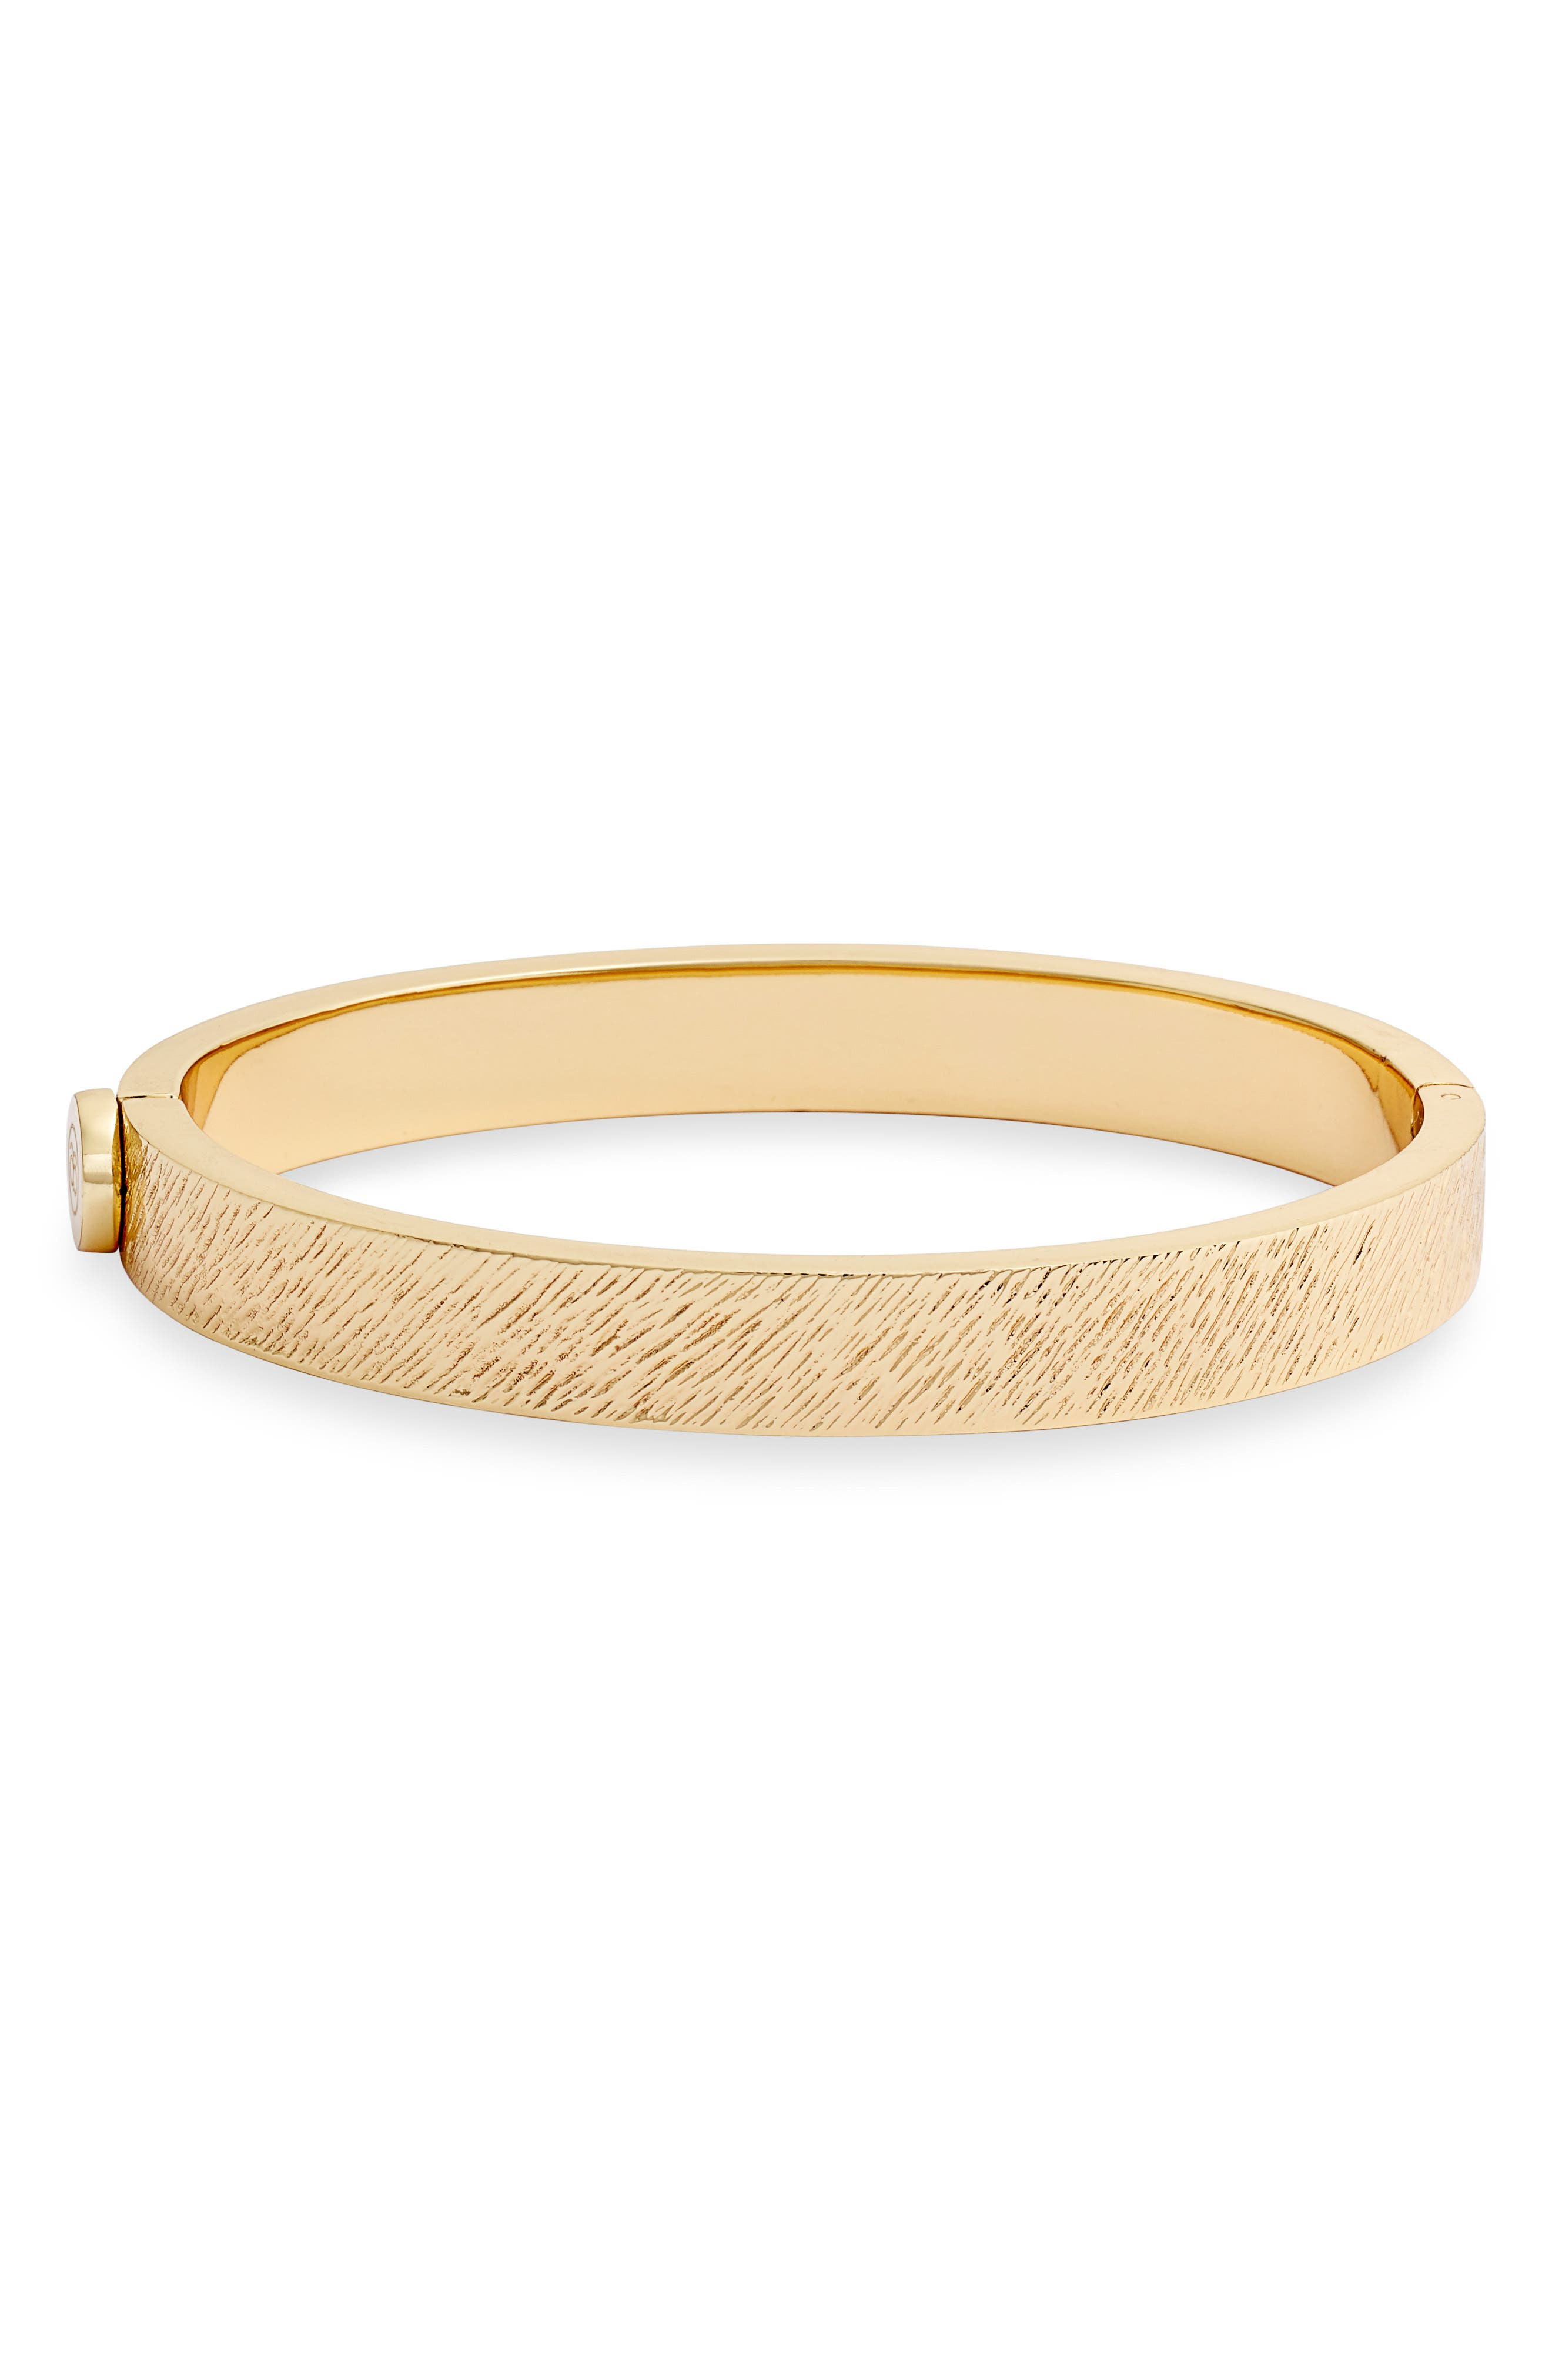 Image of Gorjana Jax 18K Yellow Gold Plated Textured Hinged Bracelet